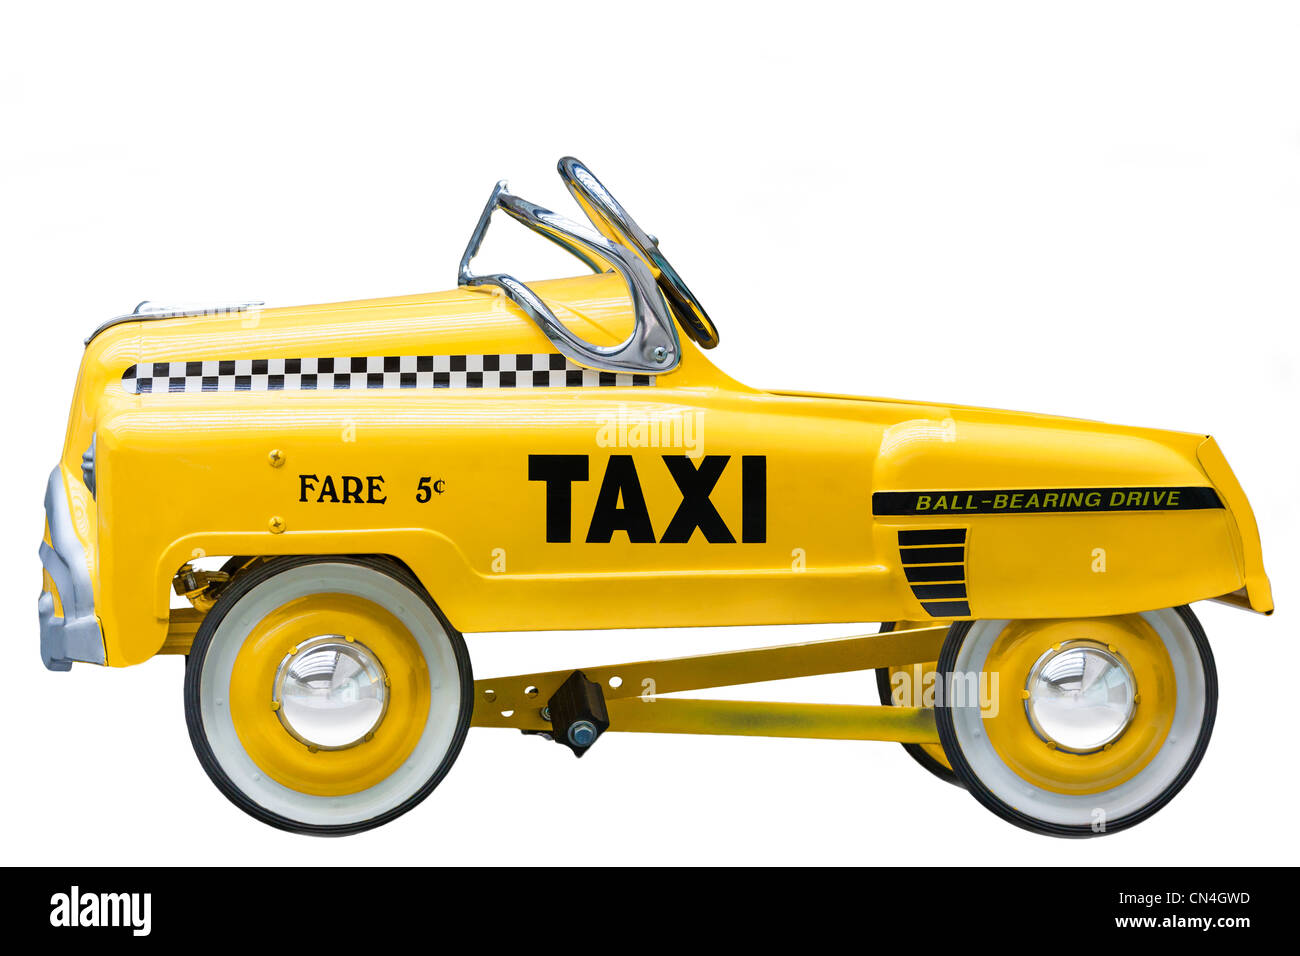 https://c7.alamy.com/comp/CN4GWD/kids-size-small-version-of-a-vintage-yellow-new-york-taxi-cab-a-push-CN4GWD.jpg